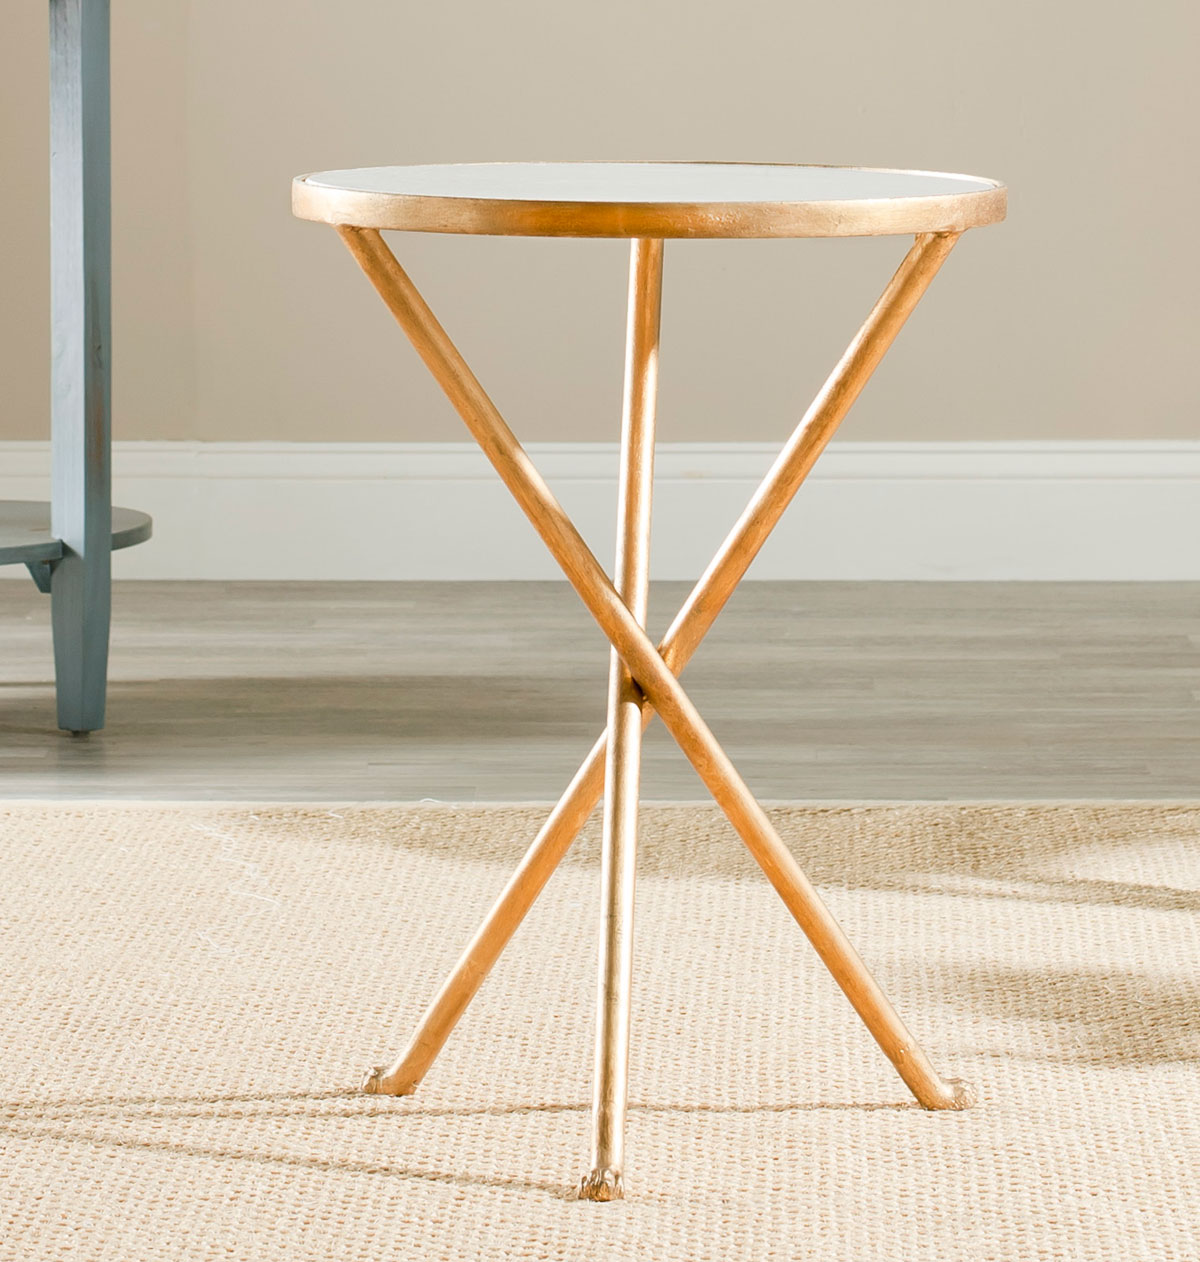 The Diminutive Marcie Accent Table Is Functional And Decorative Beside A  Chair, With Round White Marble Top Set In An Iron Tripod Base Thatu0027s  Finished With ...